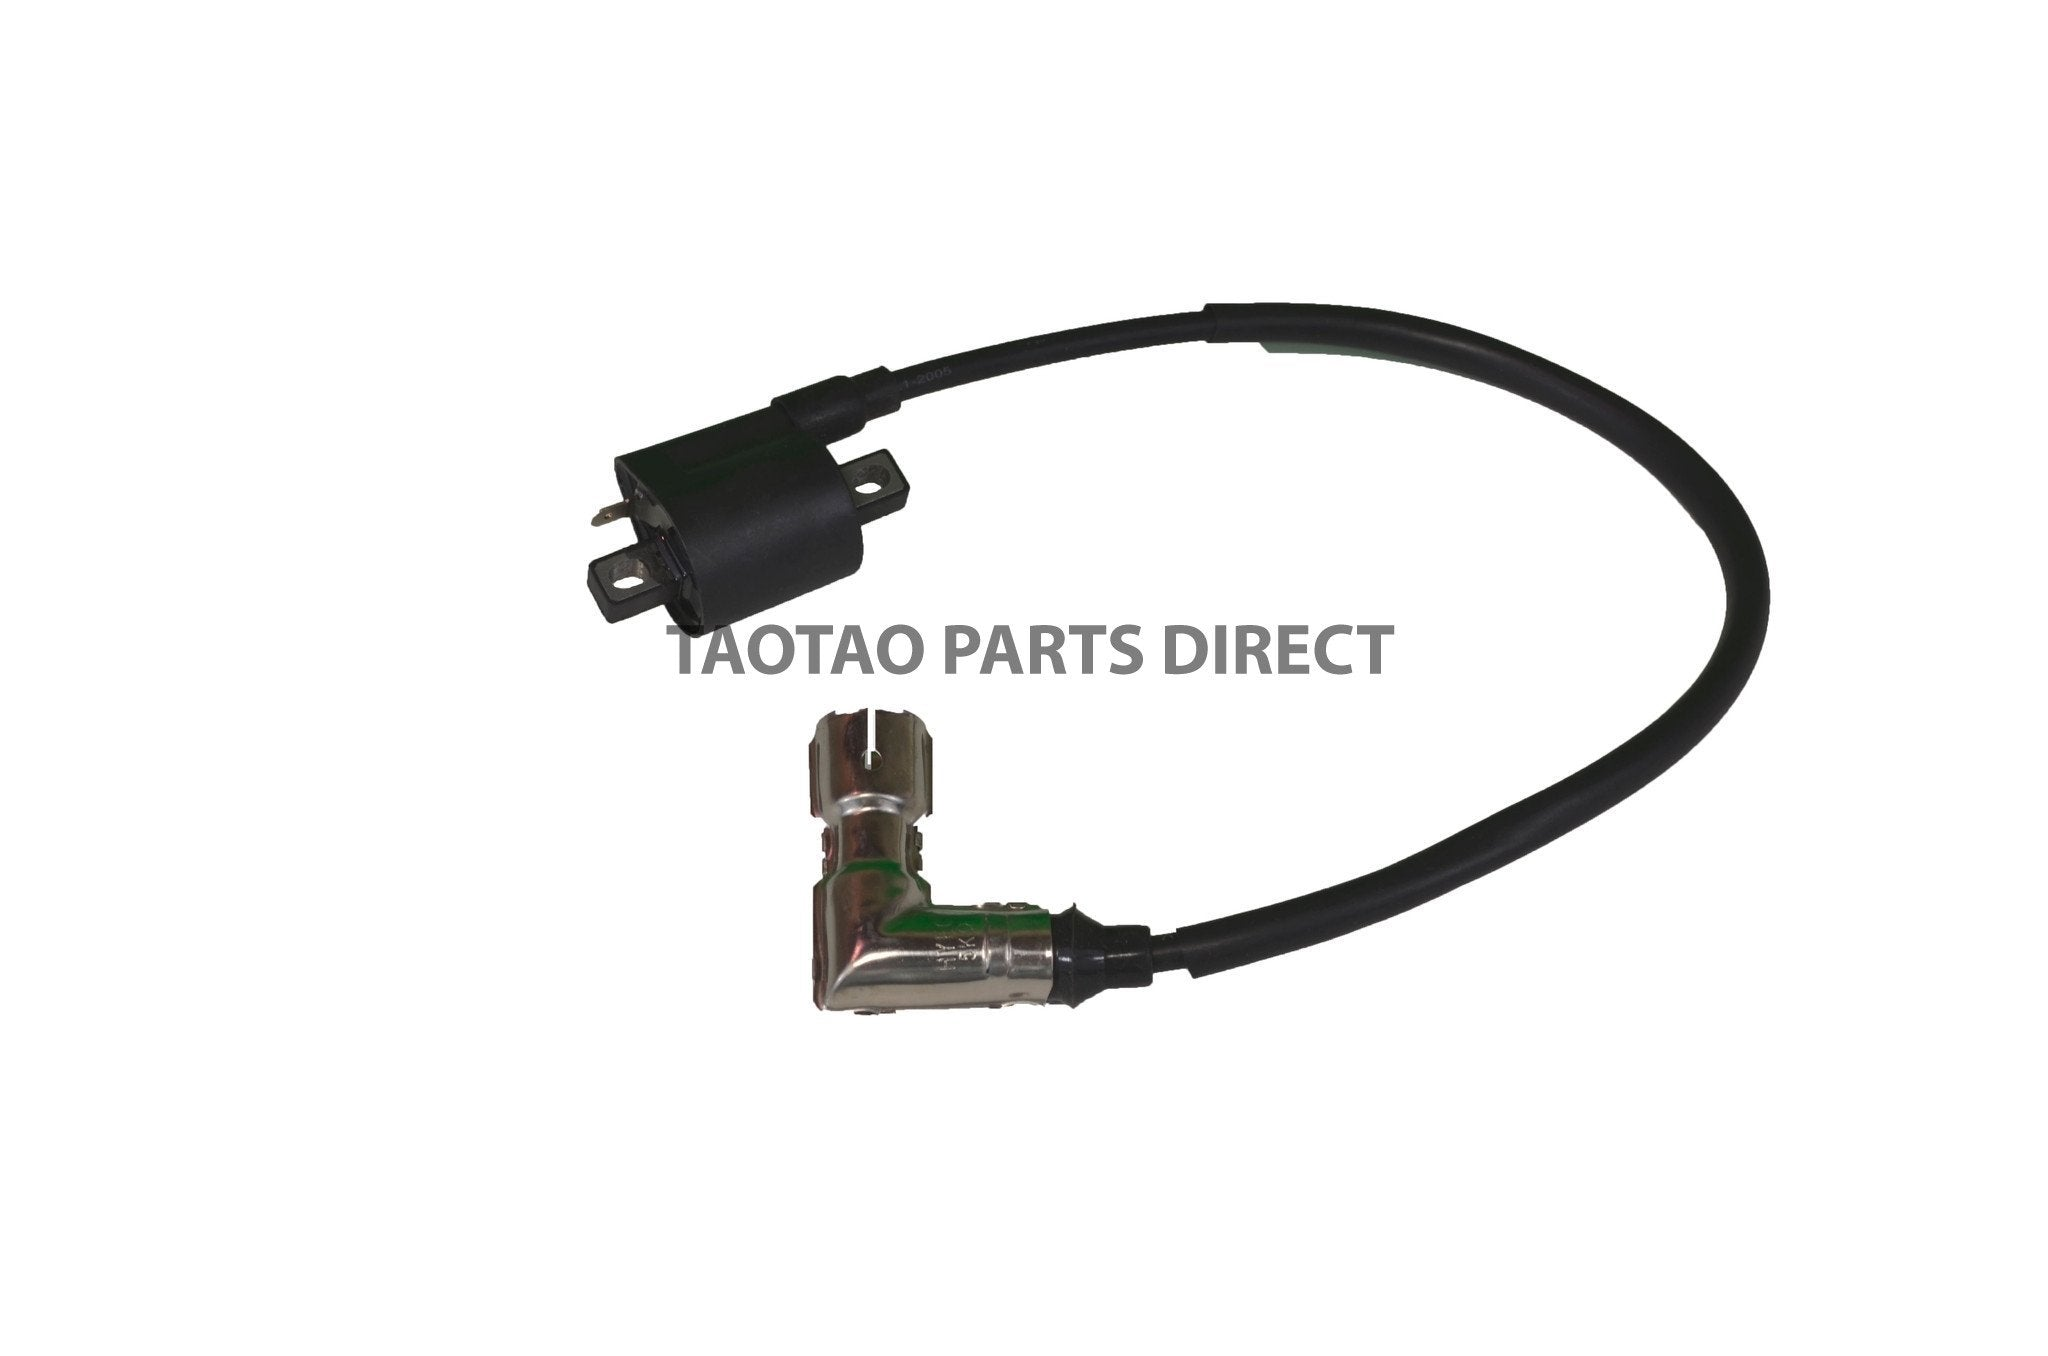 ATV Parts - Ignition Coil For 250cc And 300cc ATV's